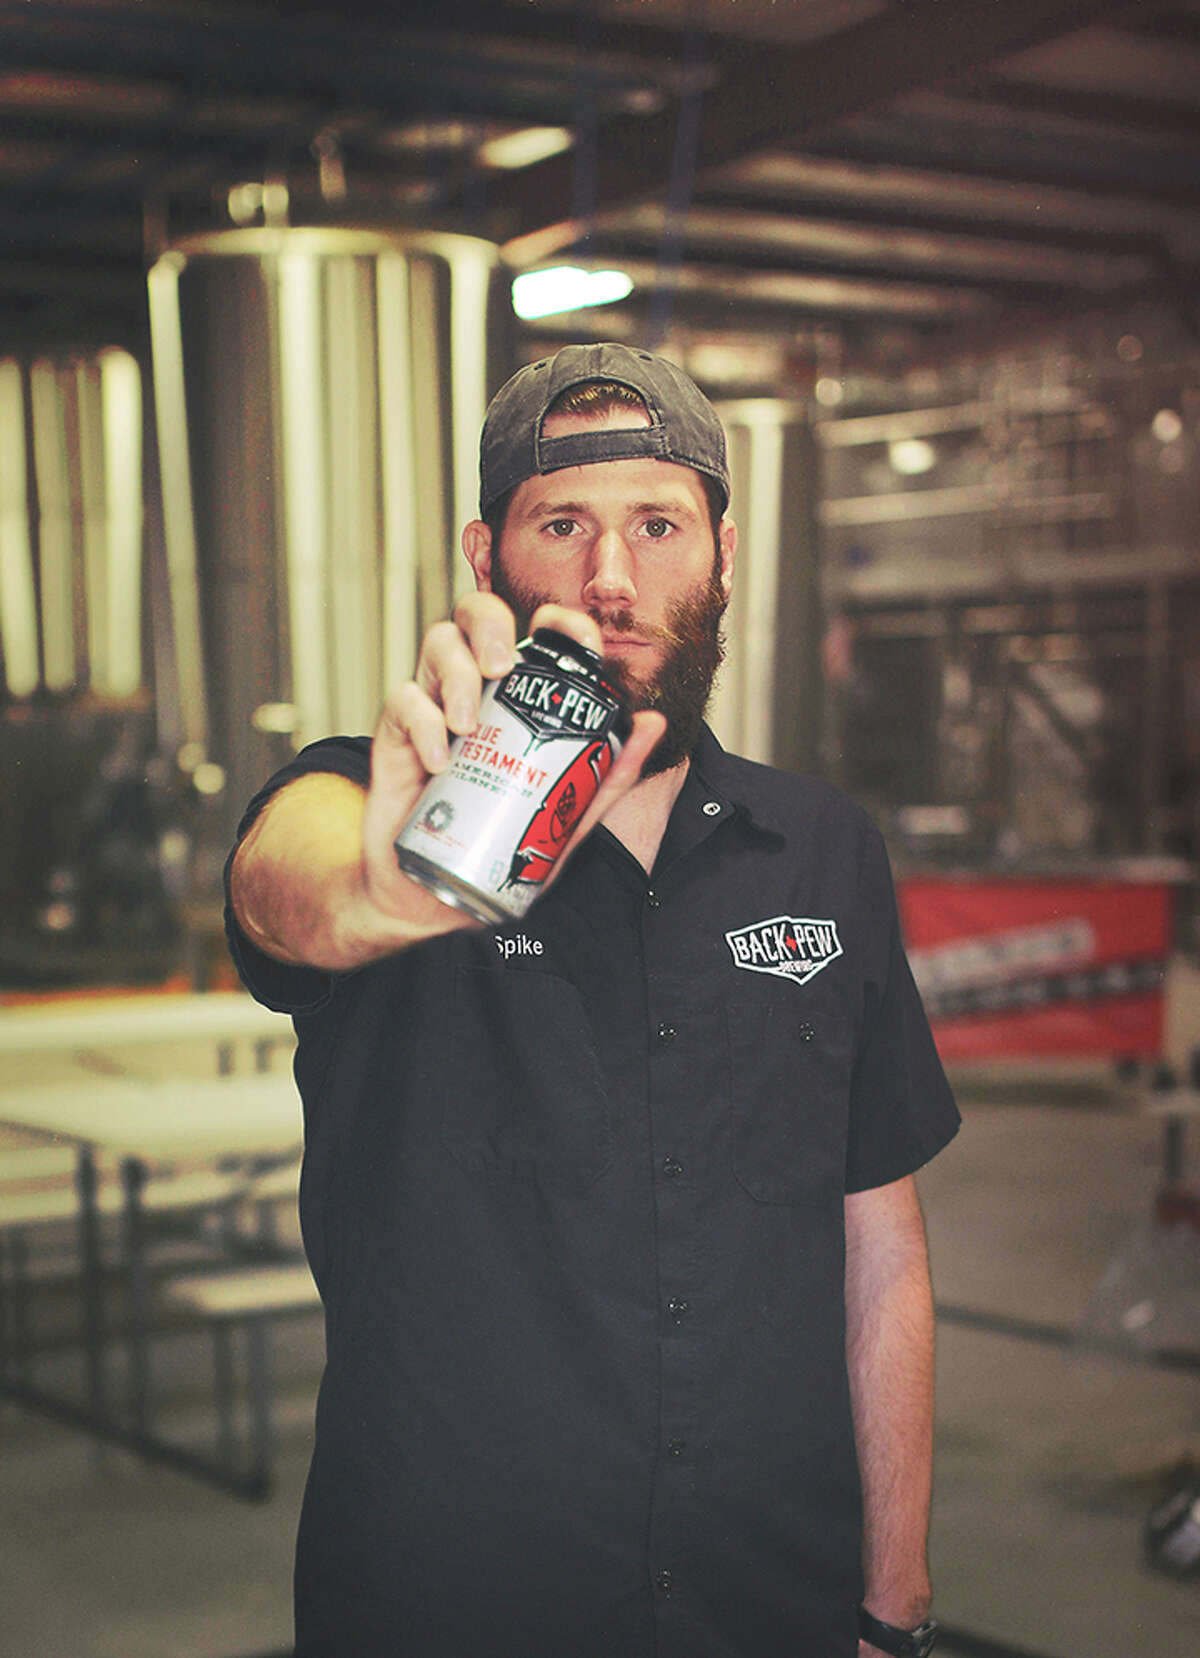 Bobby Harl, owner of Back Pew Brewing Company is a finalist for Young Entrepreneur of the Year for the inauguralLake Houston Young Entrepreneurs and Professionals (YEP) Awards on March 8 at The Overlook in Atascocita.